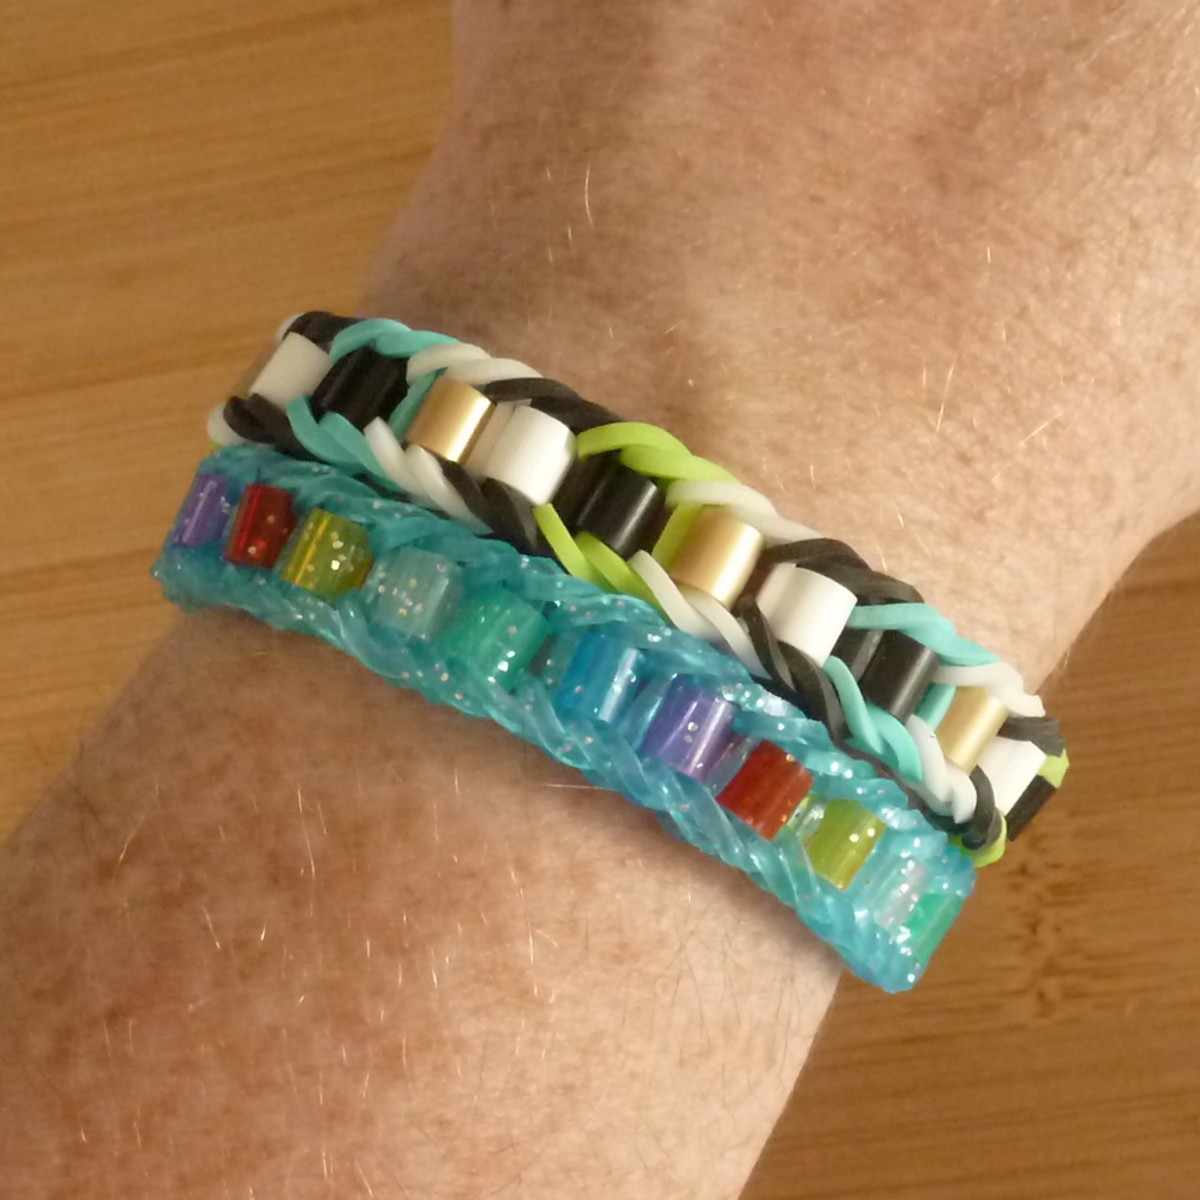 You can also combine perler beads with loom band bracelets